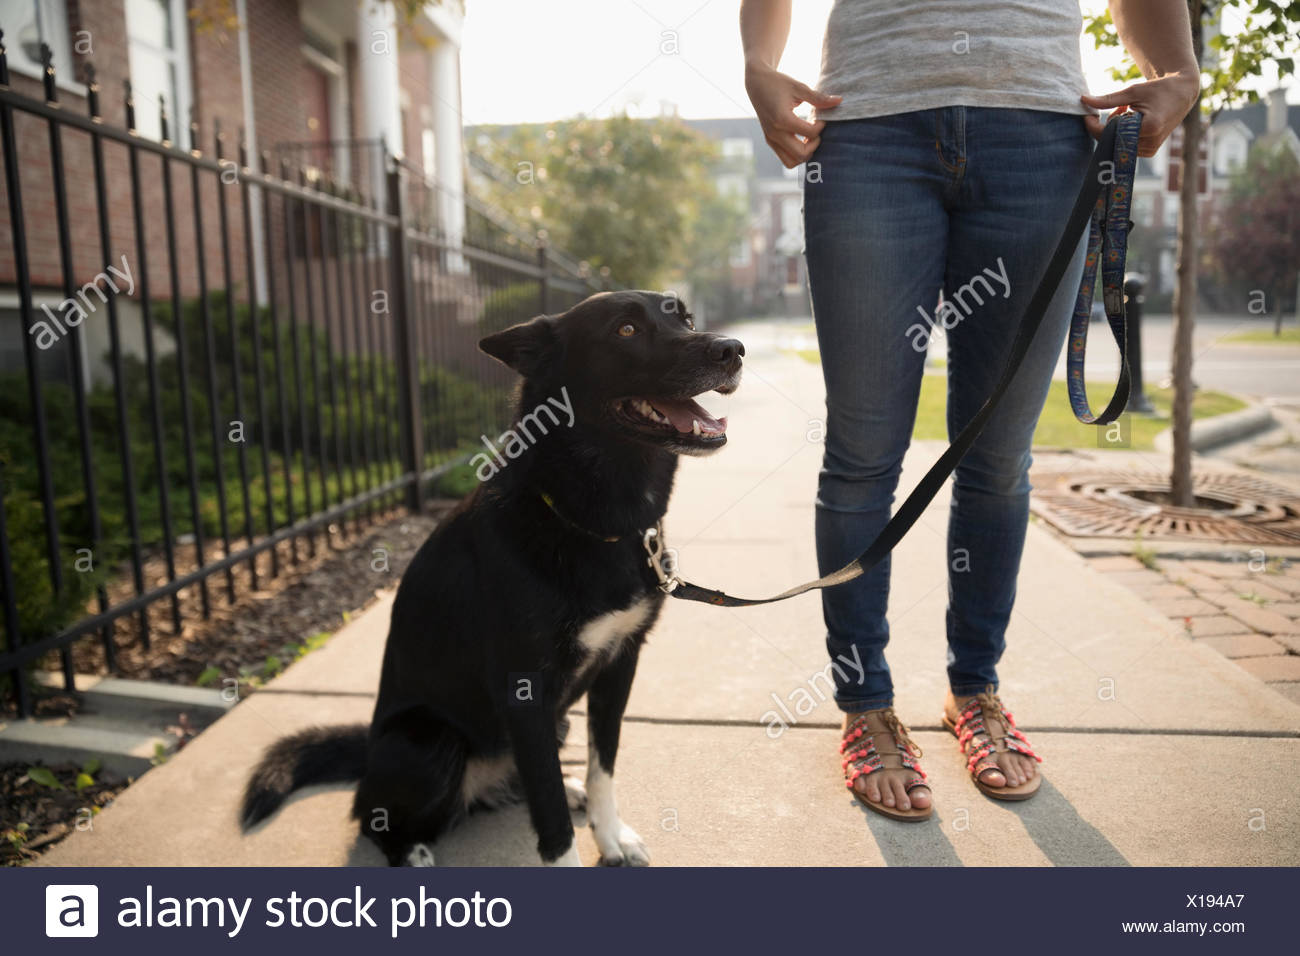 Woman standing with dog on leash on sidewalk - Stock Image